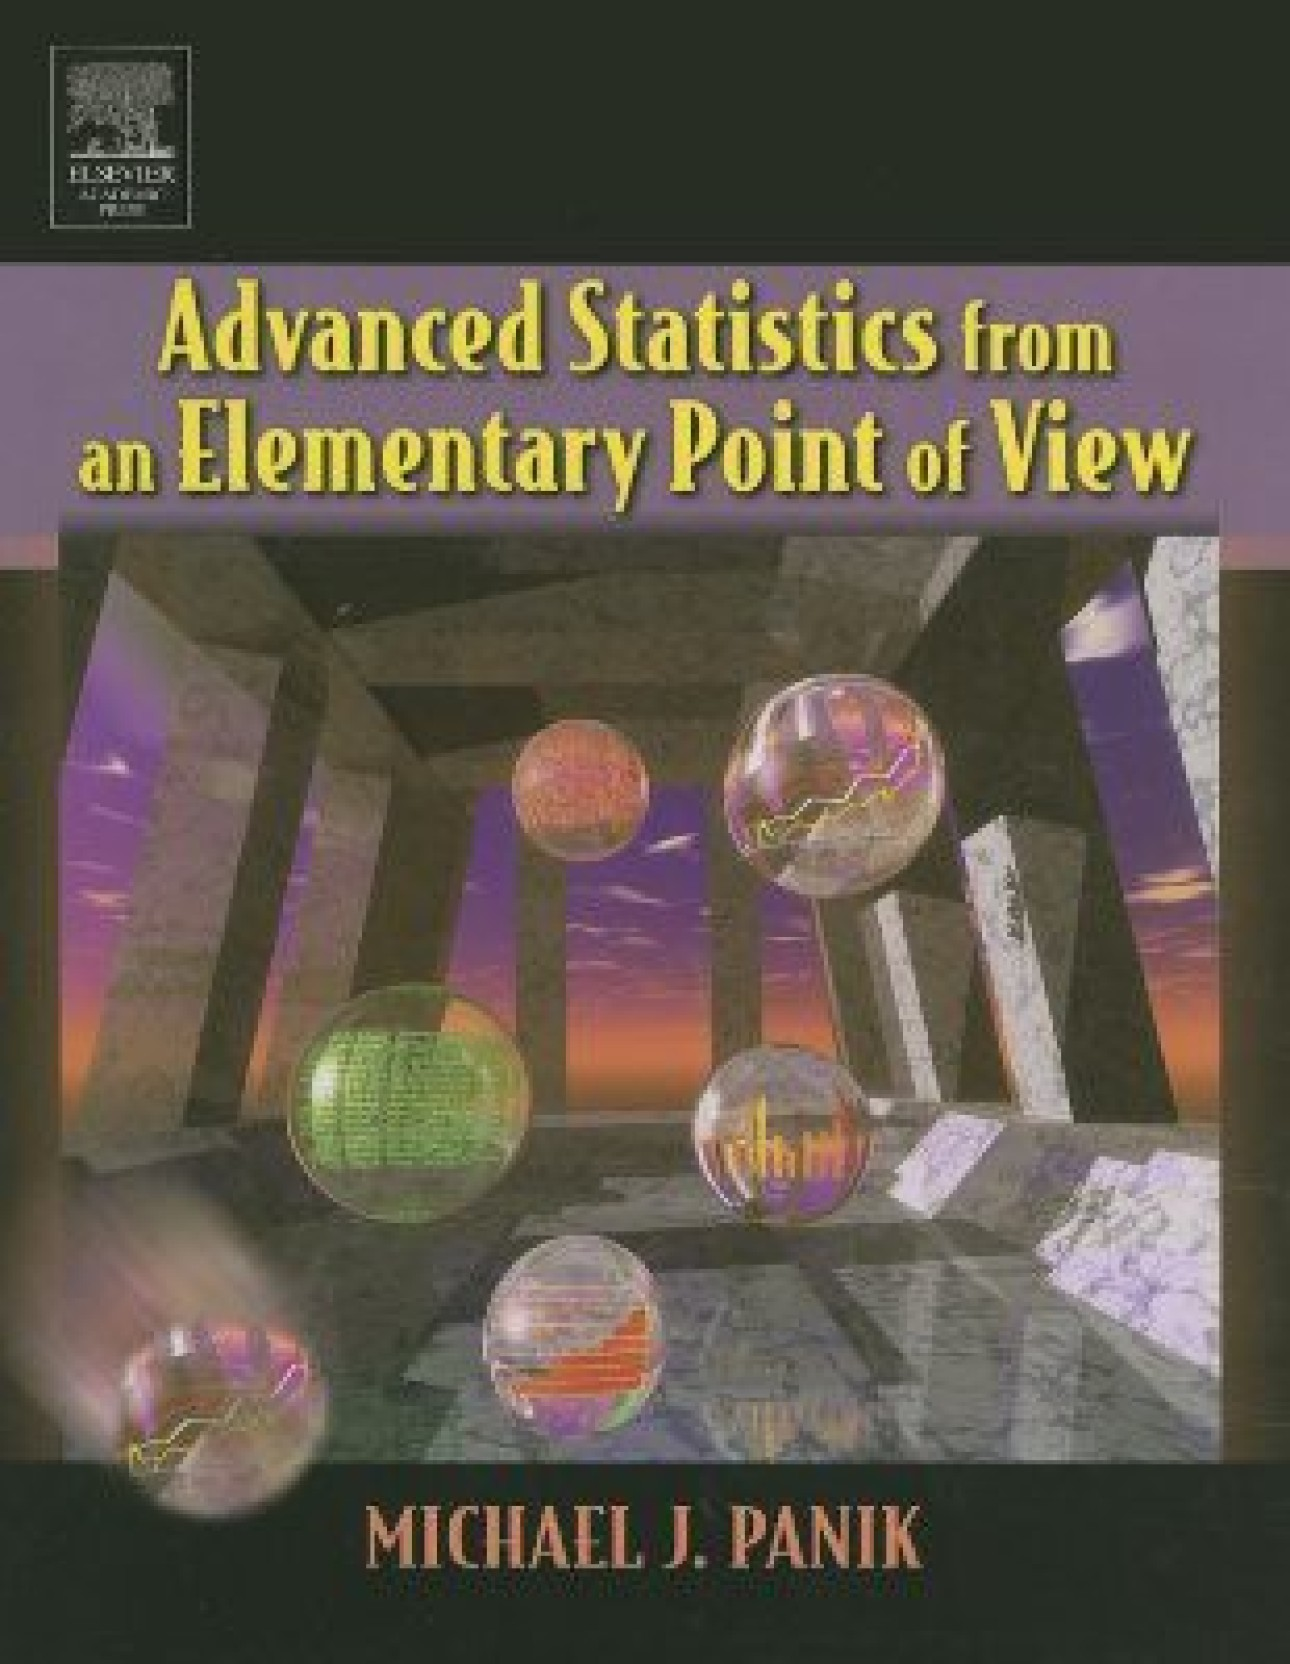 Advanced Statistics from an Elementary Point of View. Share